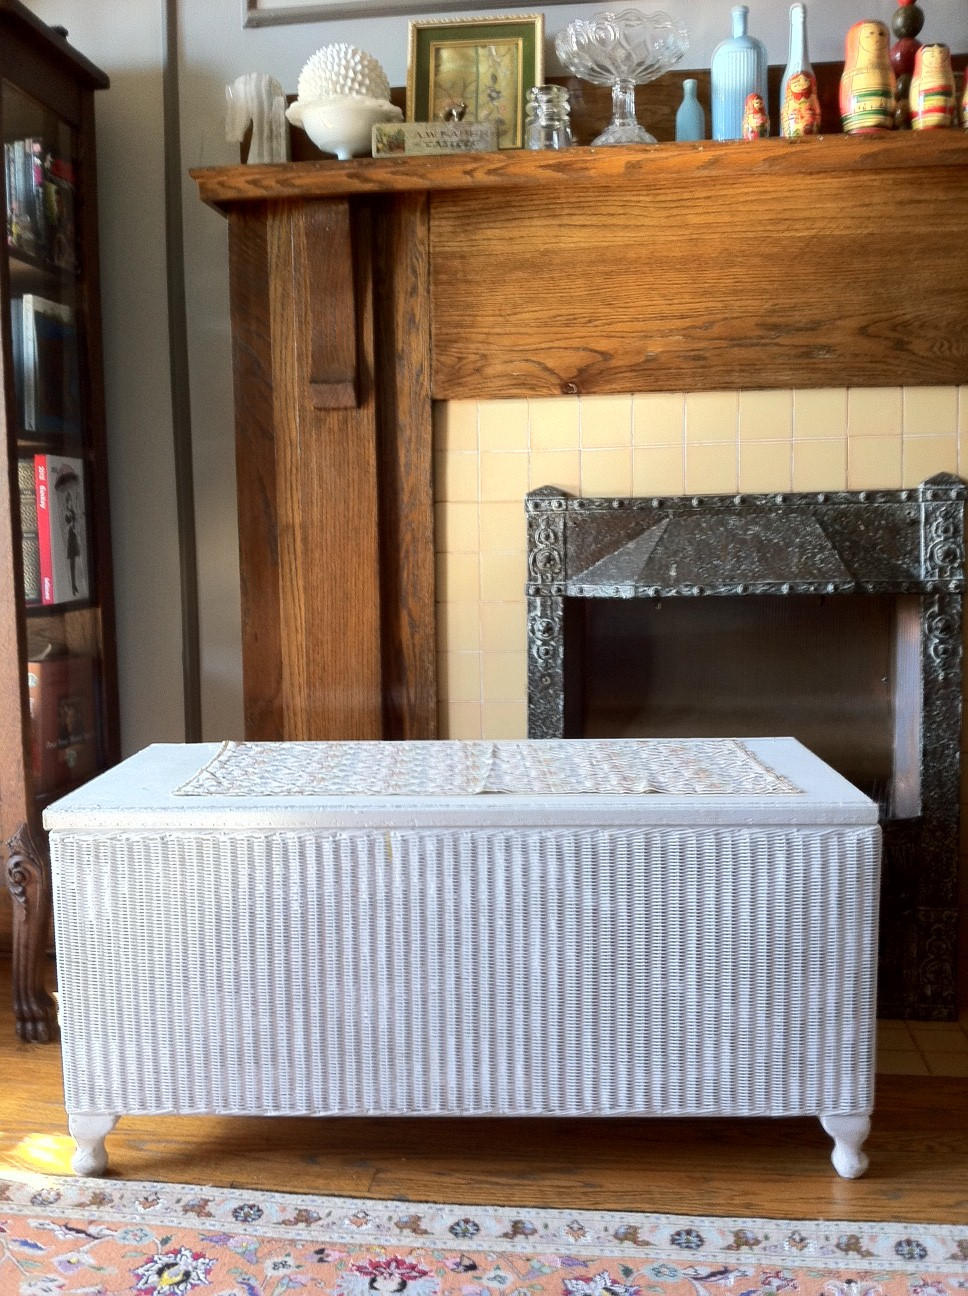 *SOLD* White Wicker Blanket Chest, Toy Chest, Or Coffee Table: $30